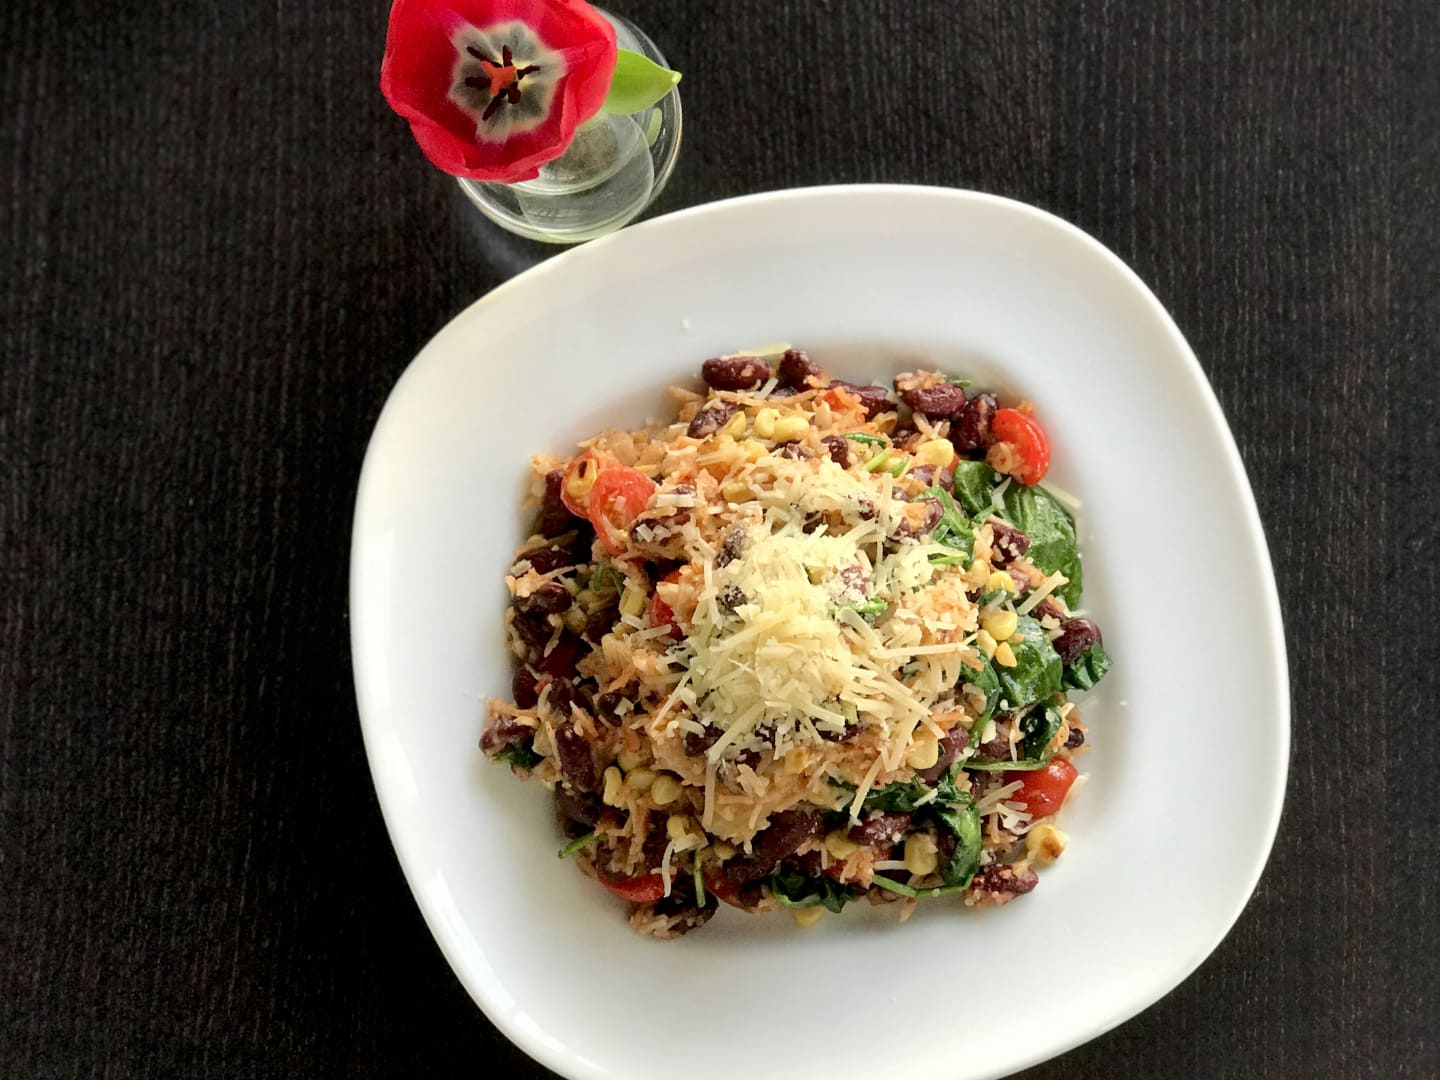 Red Beans & Rice Vegetarian Style w/ Roasted Shallots, Tomatoes, Corn, Sauteed Greens & Parmesan